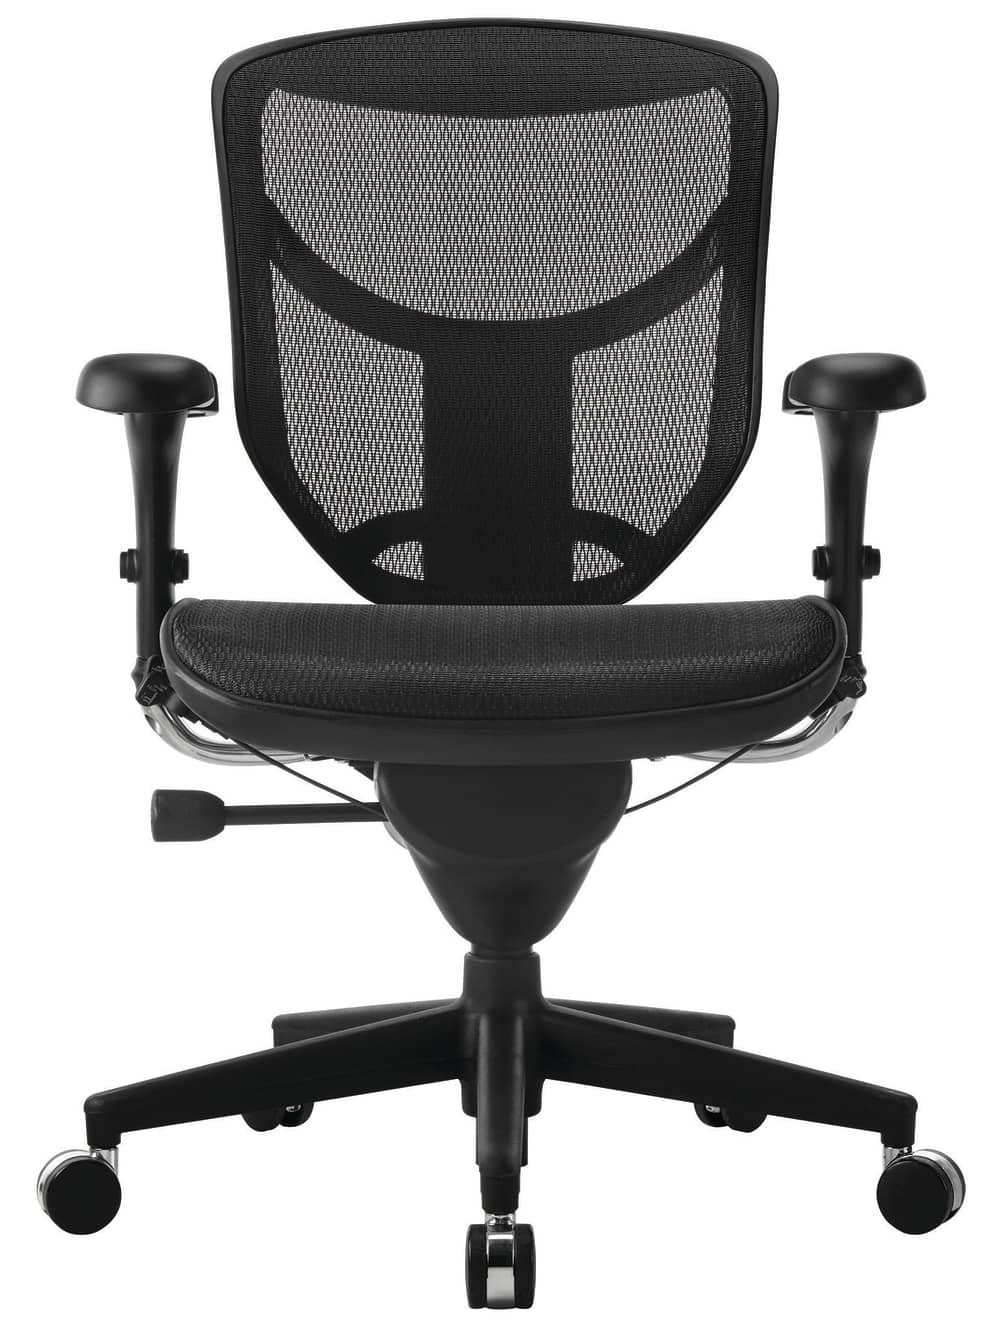 WorkPro® Quantum 9000 Series Ergonomic Mid-Back Mesh/Mesh Chair, Black $299.99